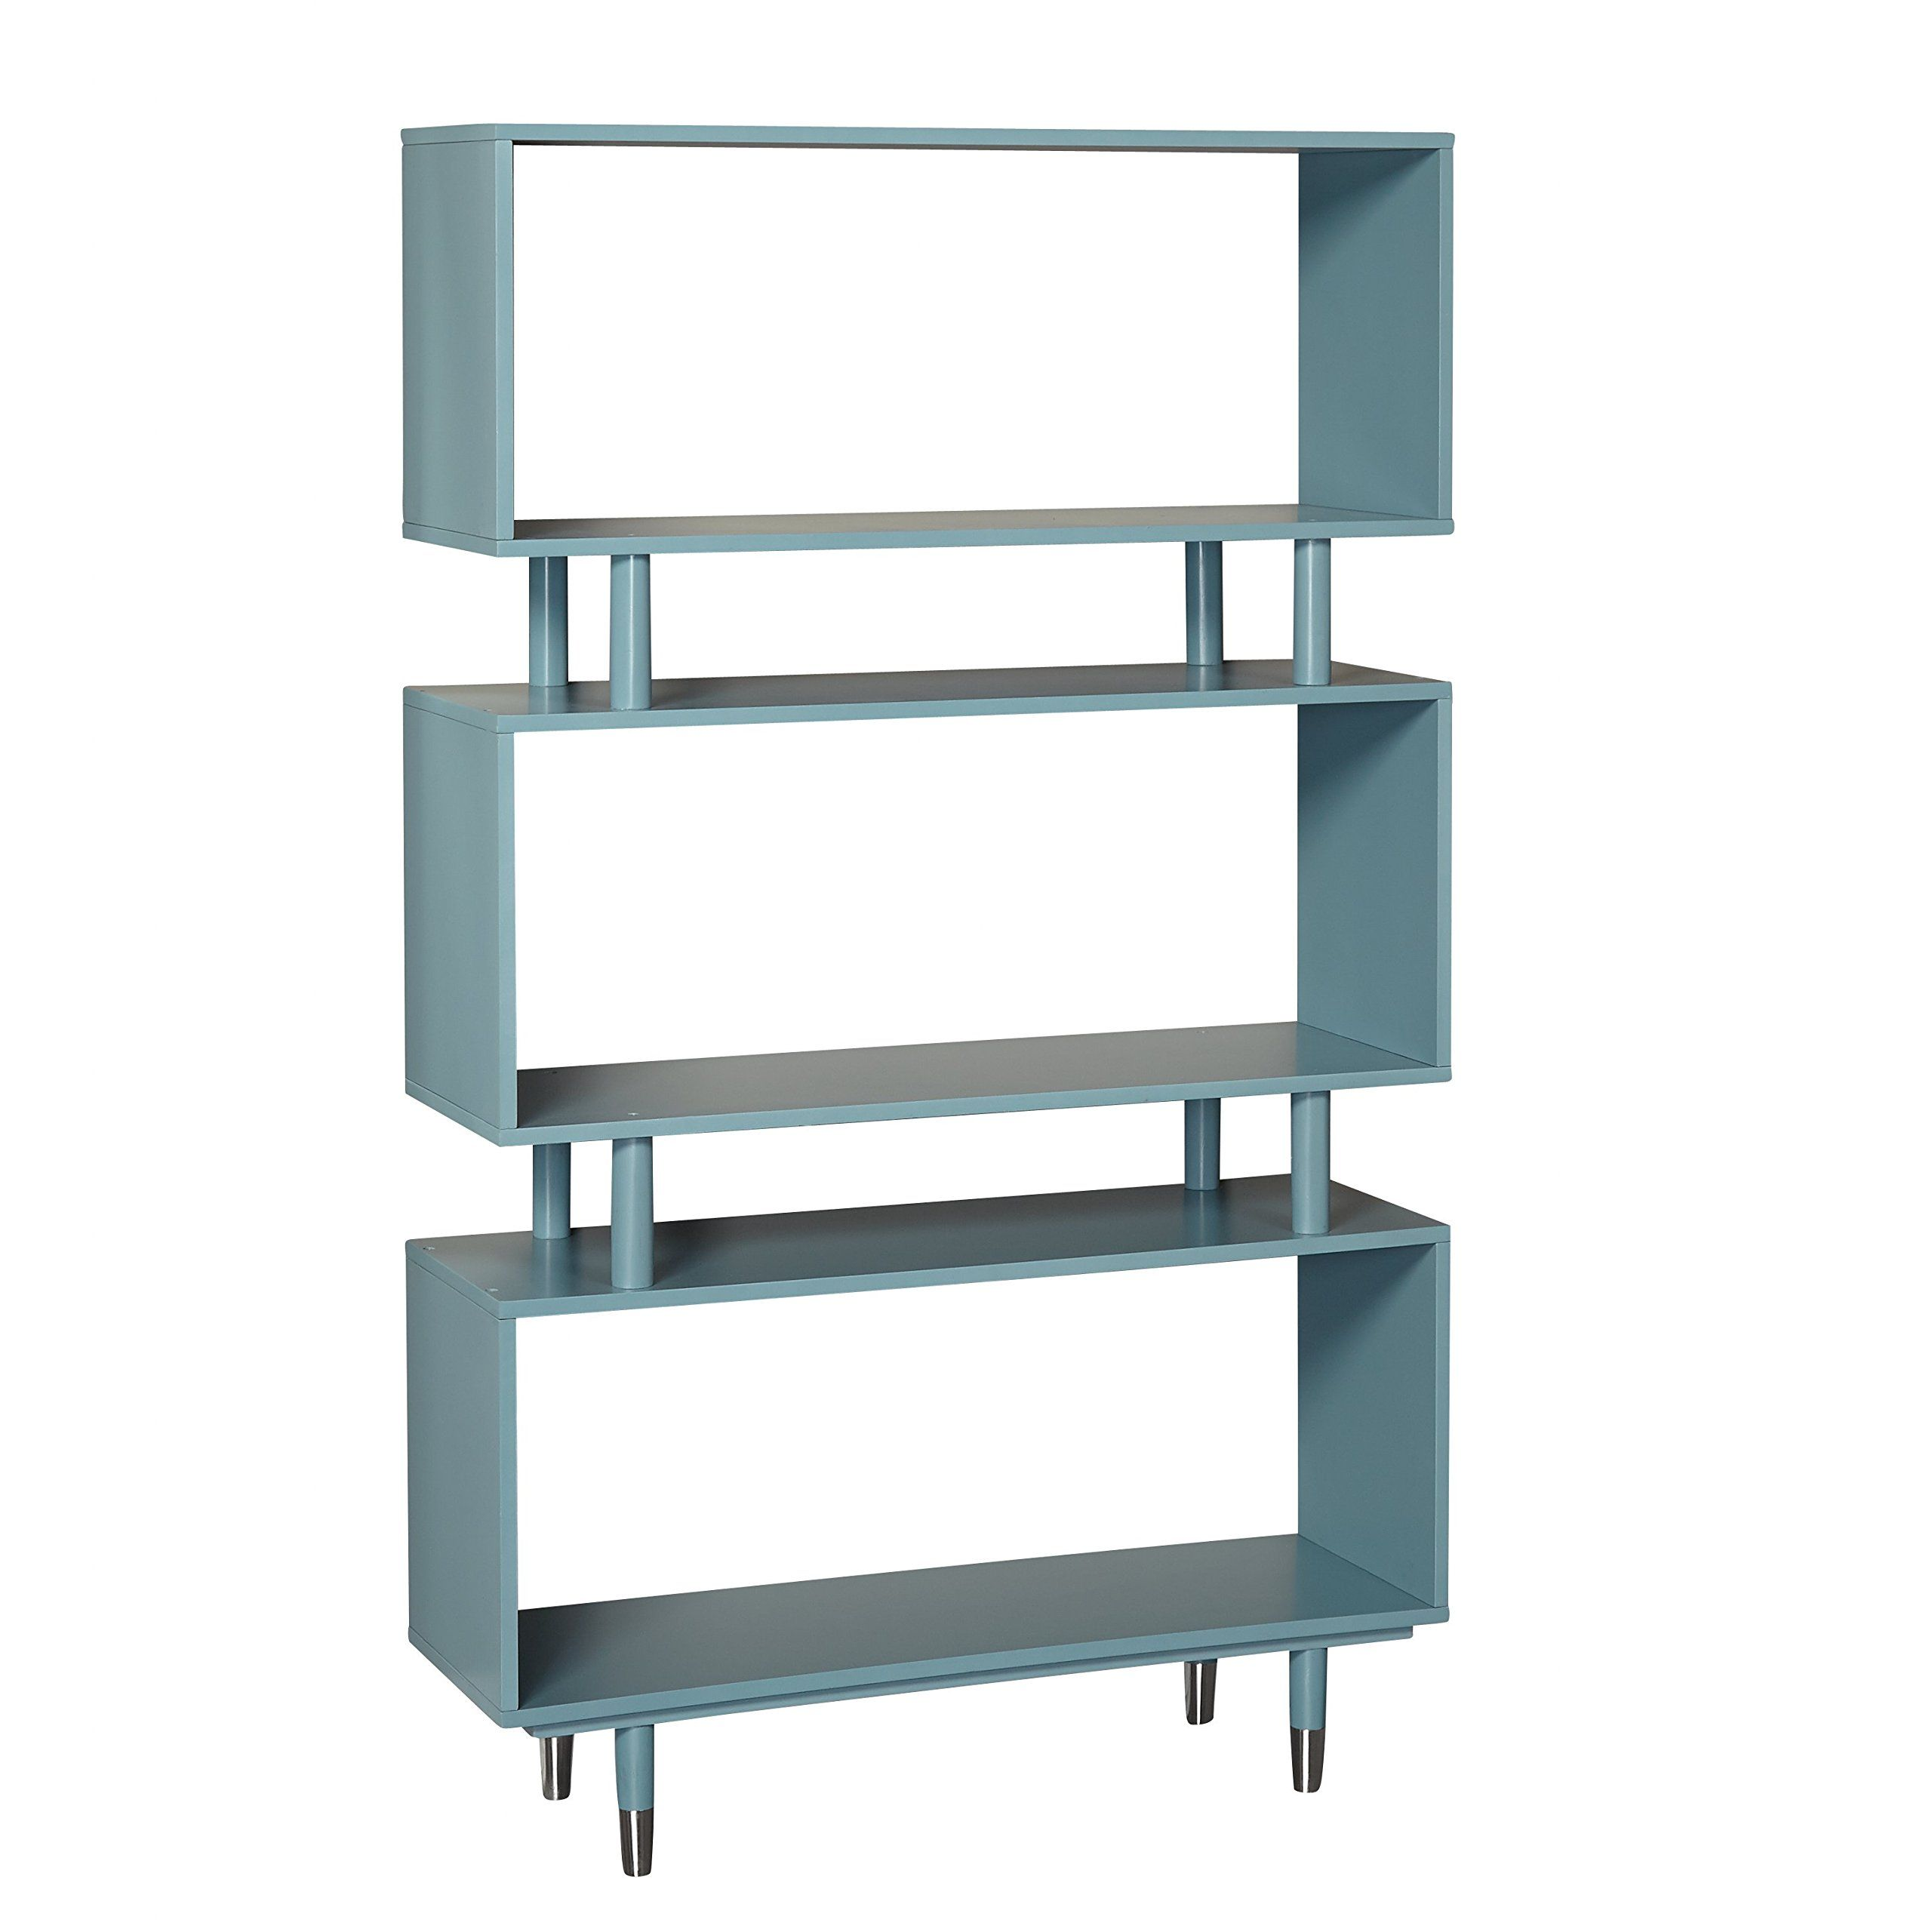 furniture book two furnishings shelf with and beautifying tier eye interesting storage opened as bookshelf hardwood low interior inspiration color blue minimalist catching inside for yo bookcase decors